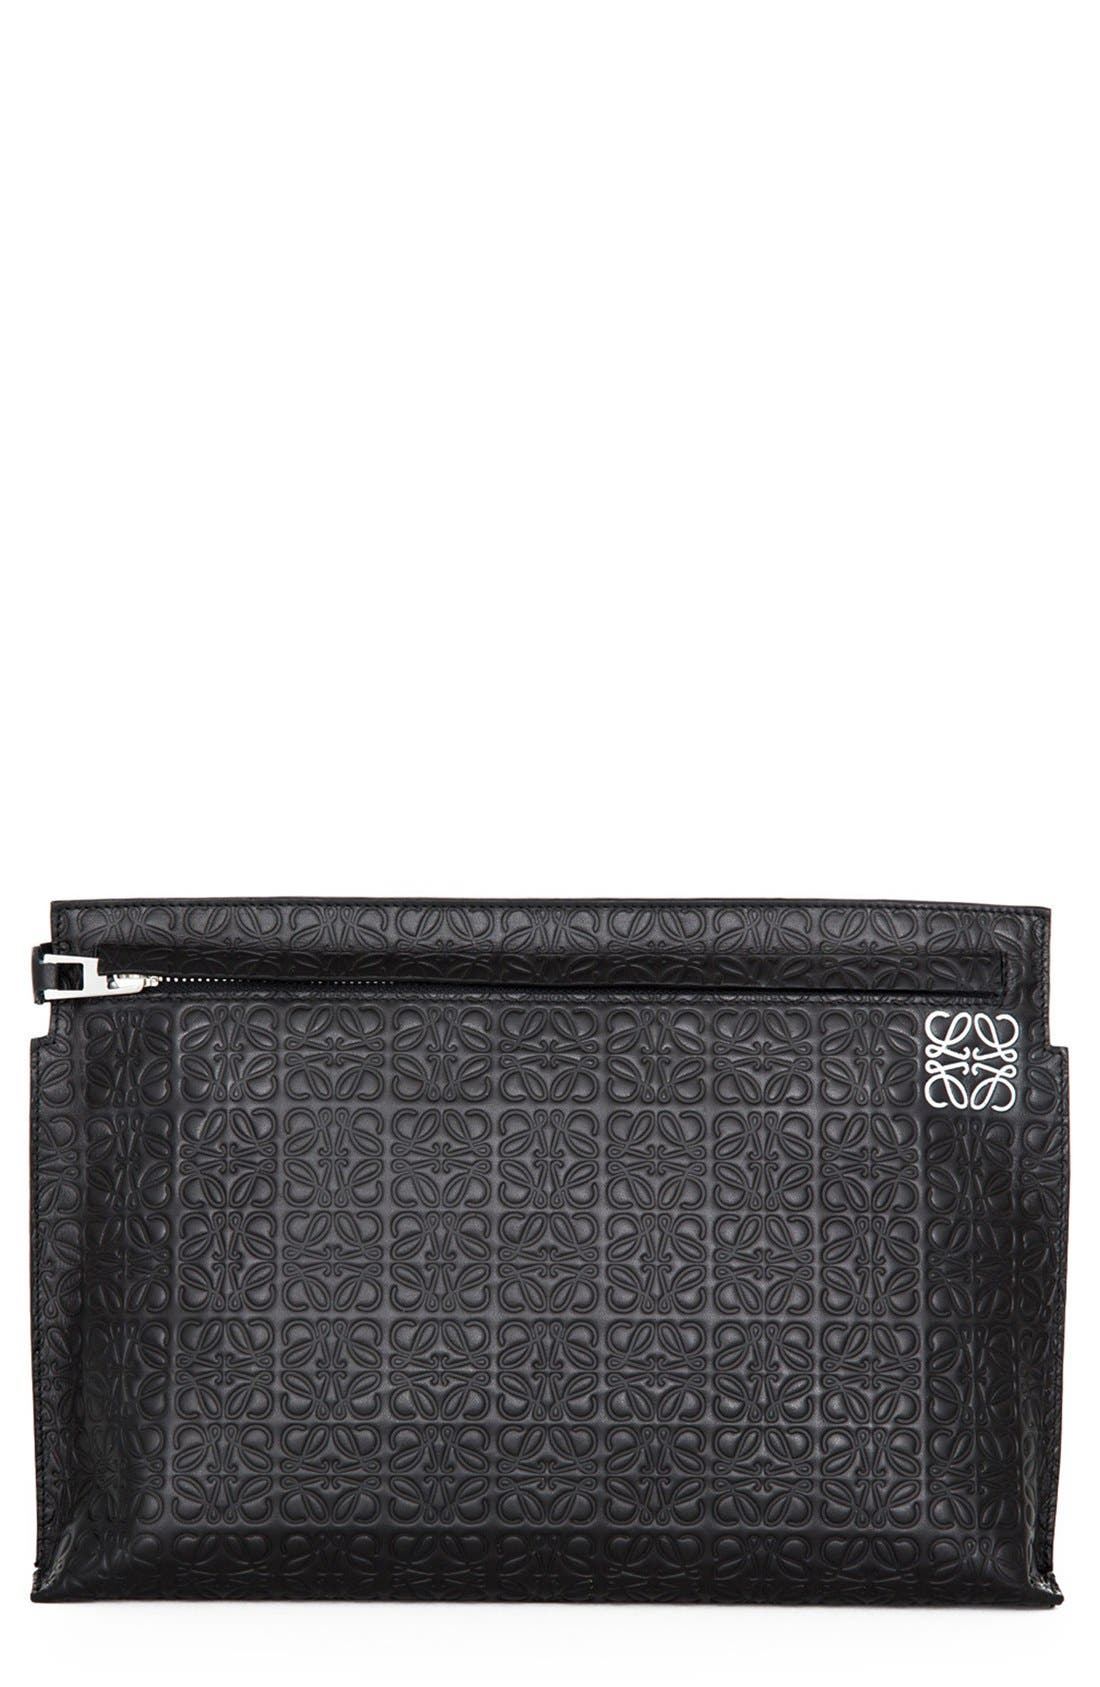 LOEWE,                             Large Logo Embossed Calfskin Leather Pouch,                             Main thumbnail 1, color,                             001